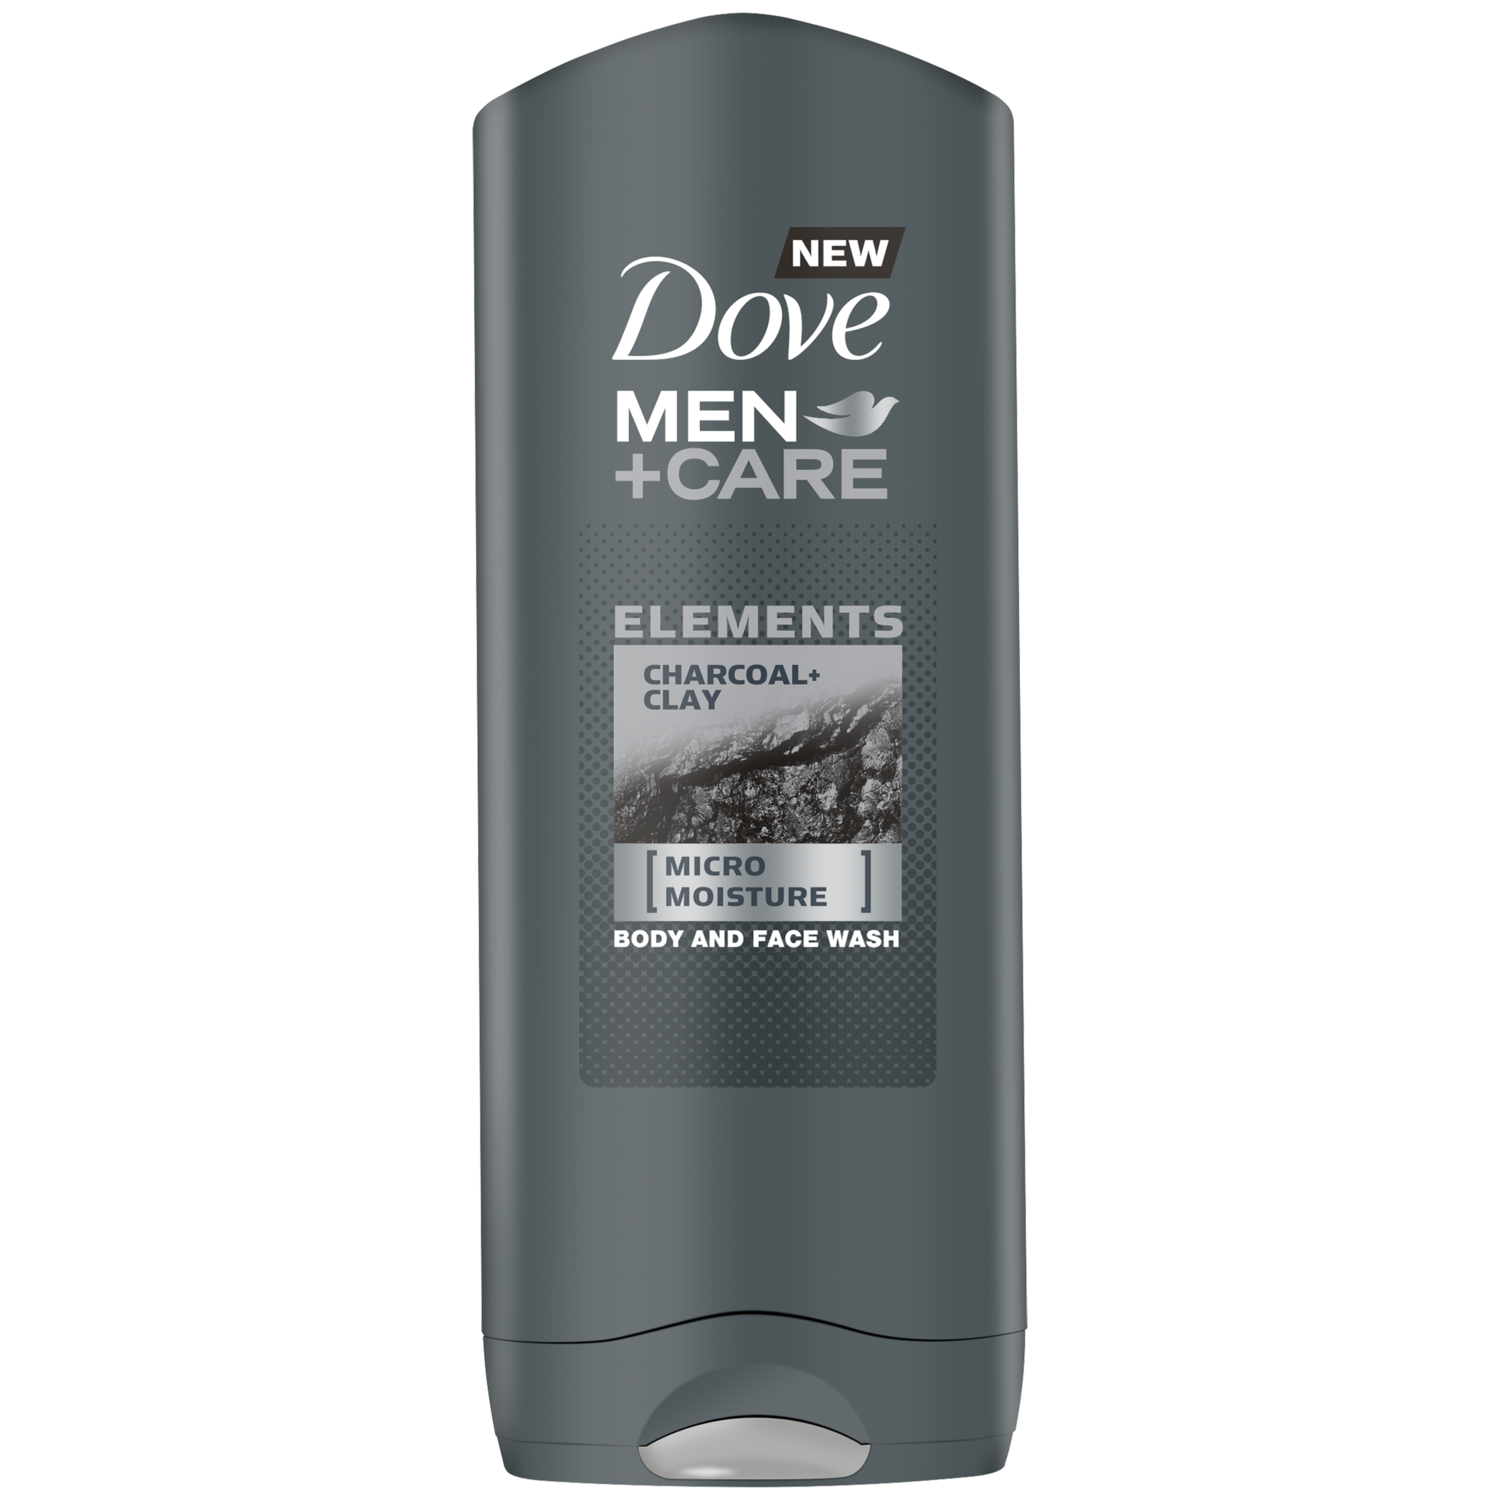 Men+Care Charcoal & Clay Body Wash.